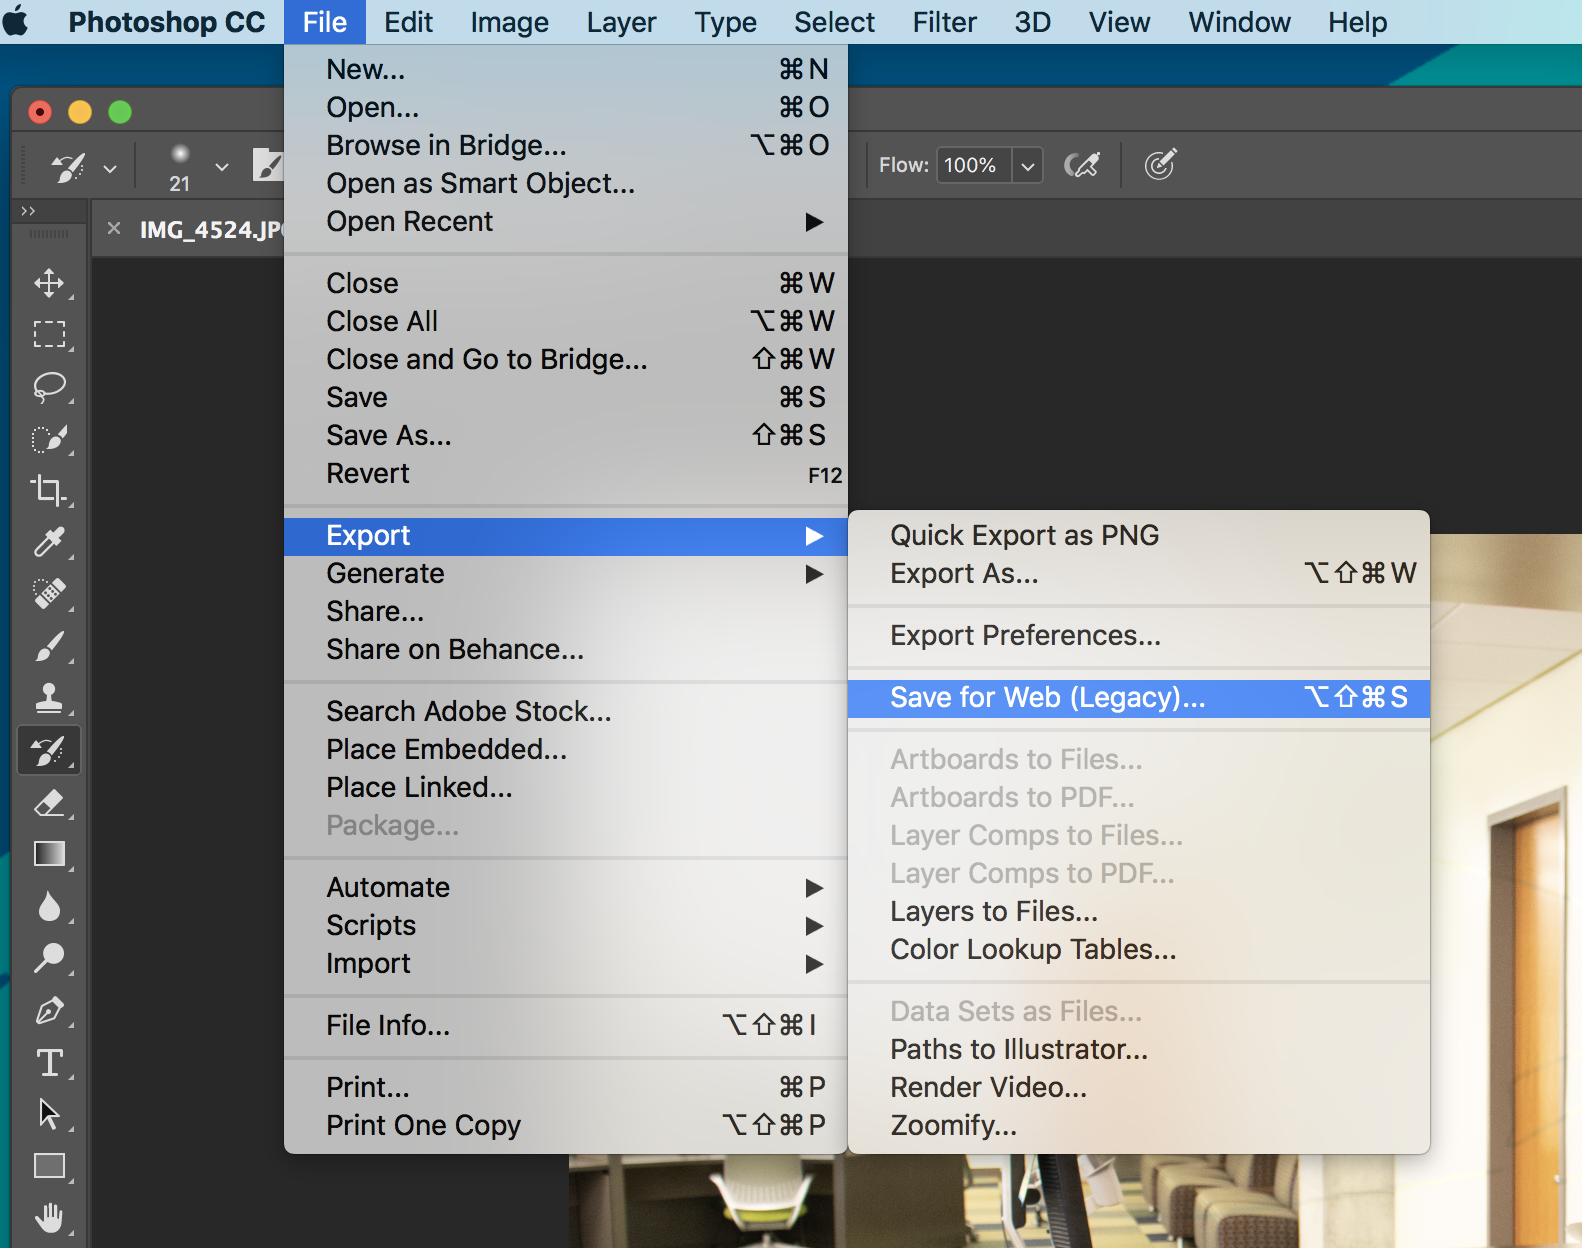 Selecting Save for Web from Menu Bar